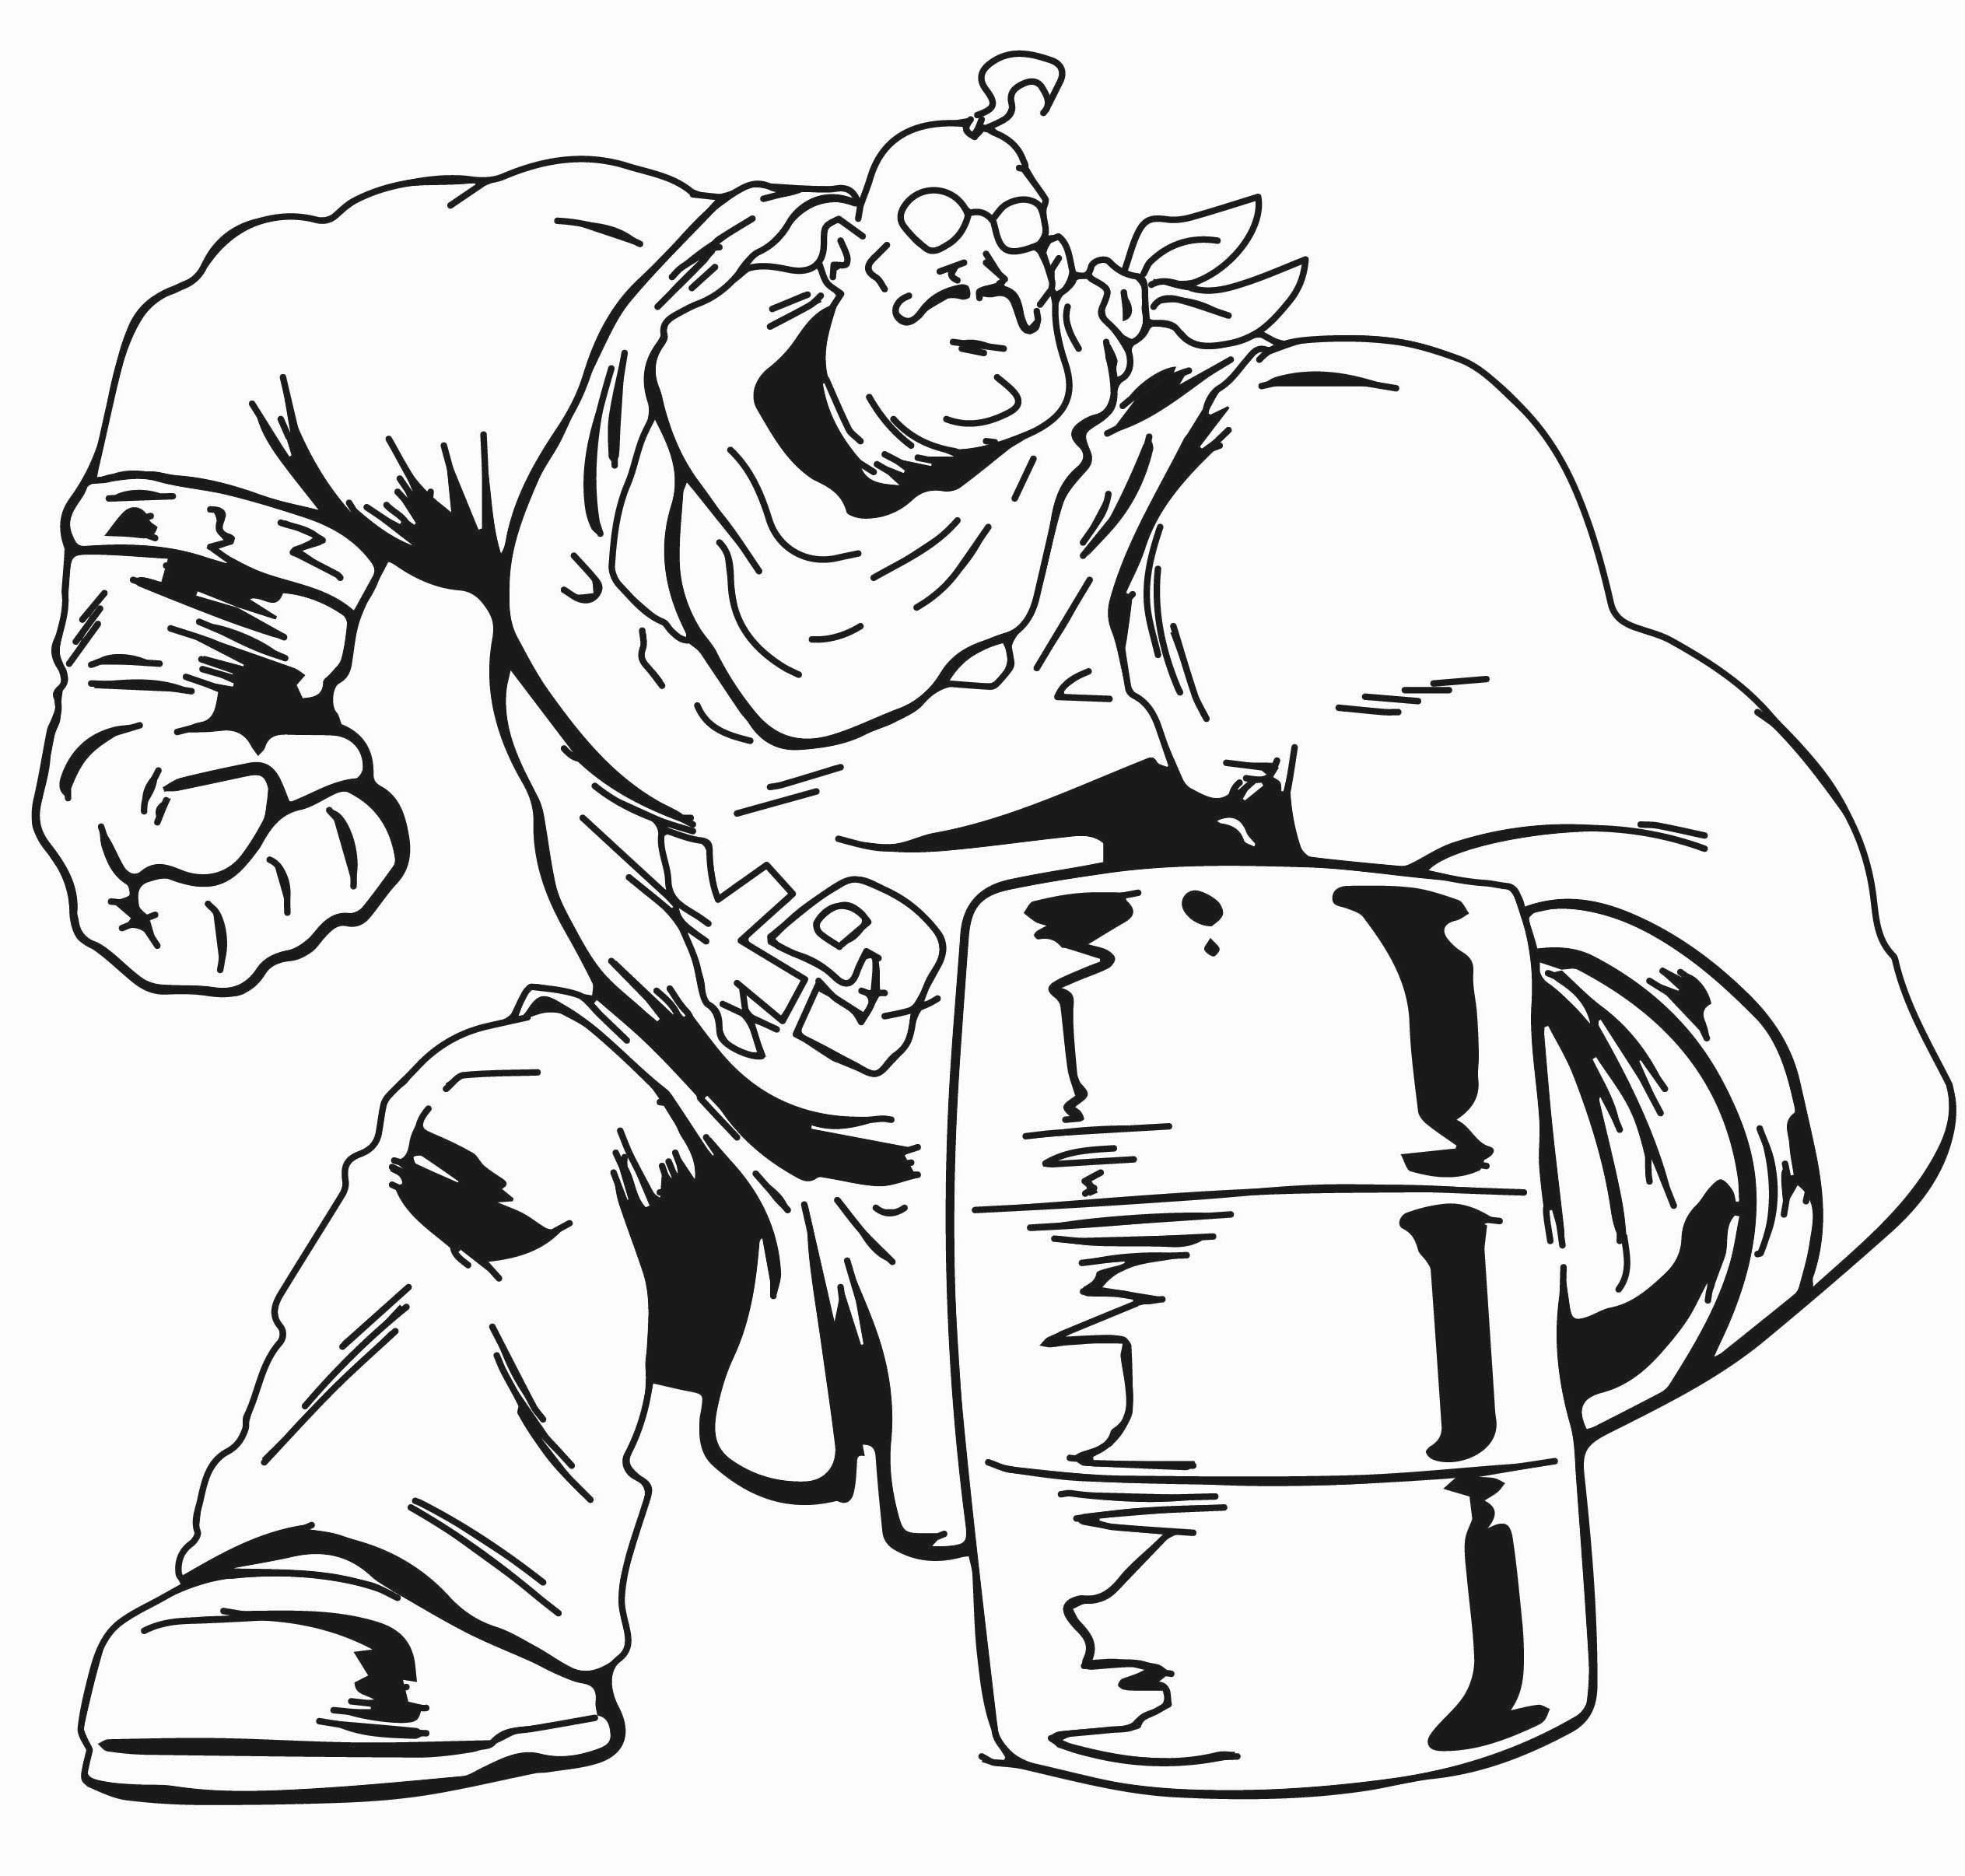 coloring pages for kids super heros superhero coloring pages best coloring pages for kids super coloring heros kids for pages